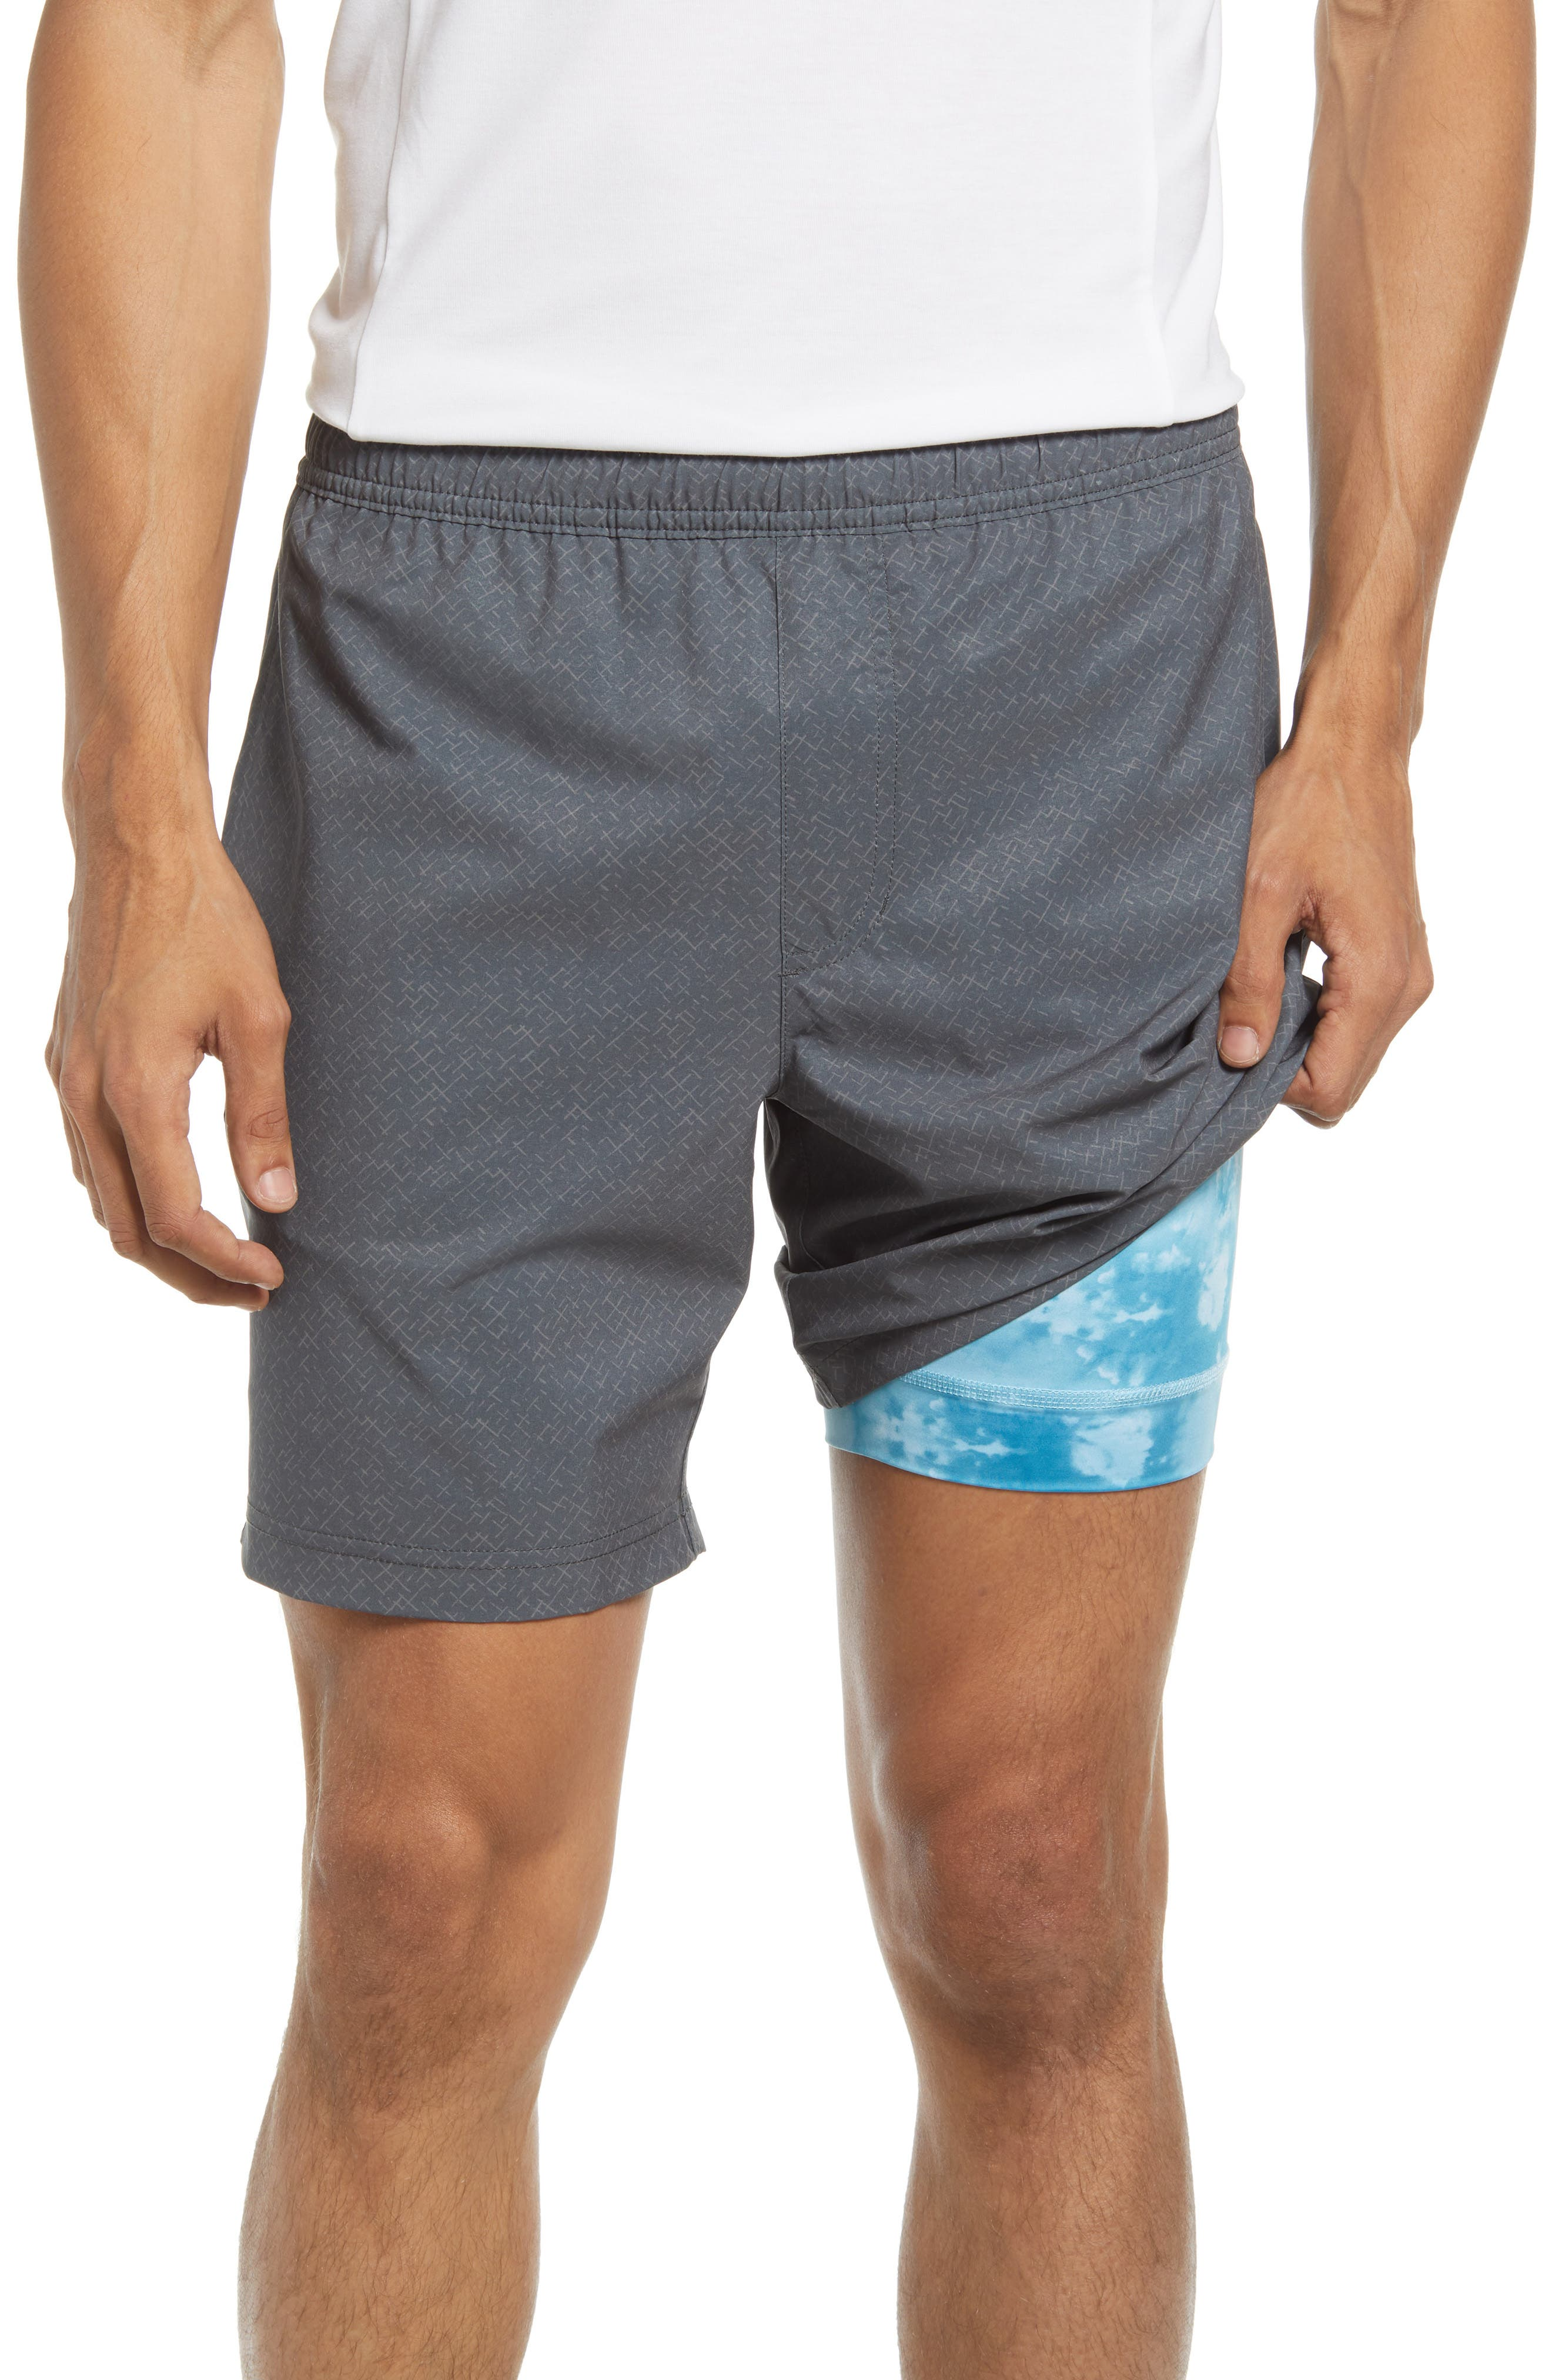 The Getting Goods Training Shorts